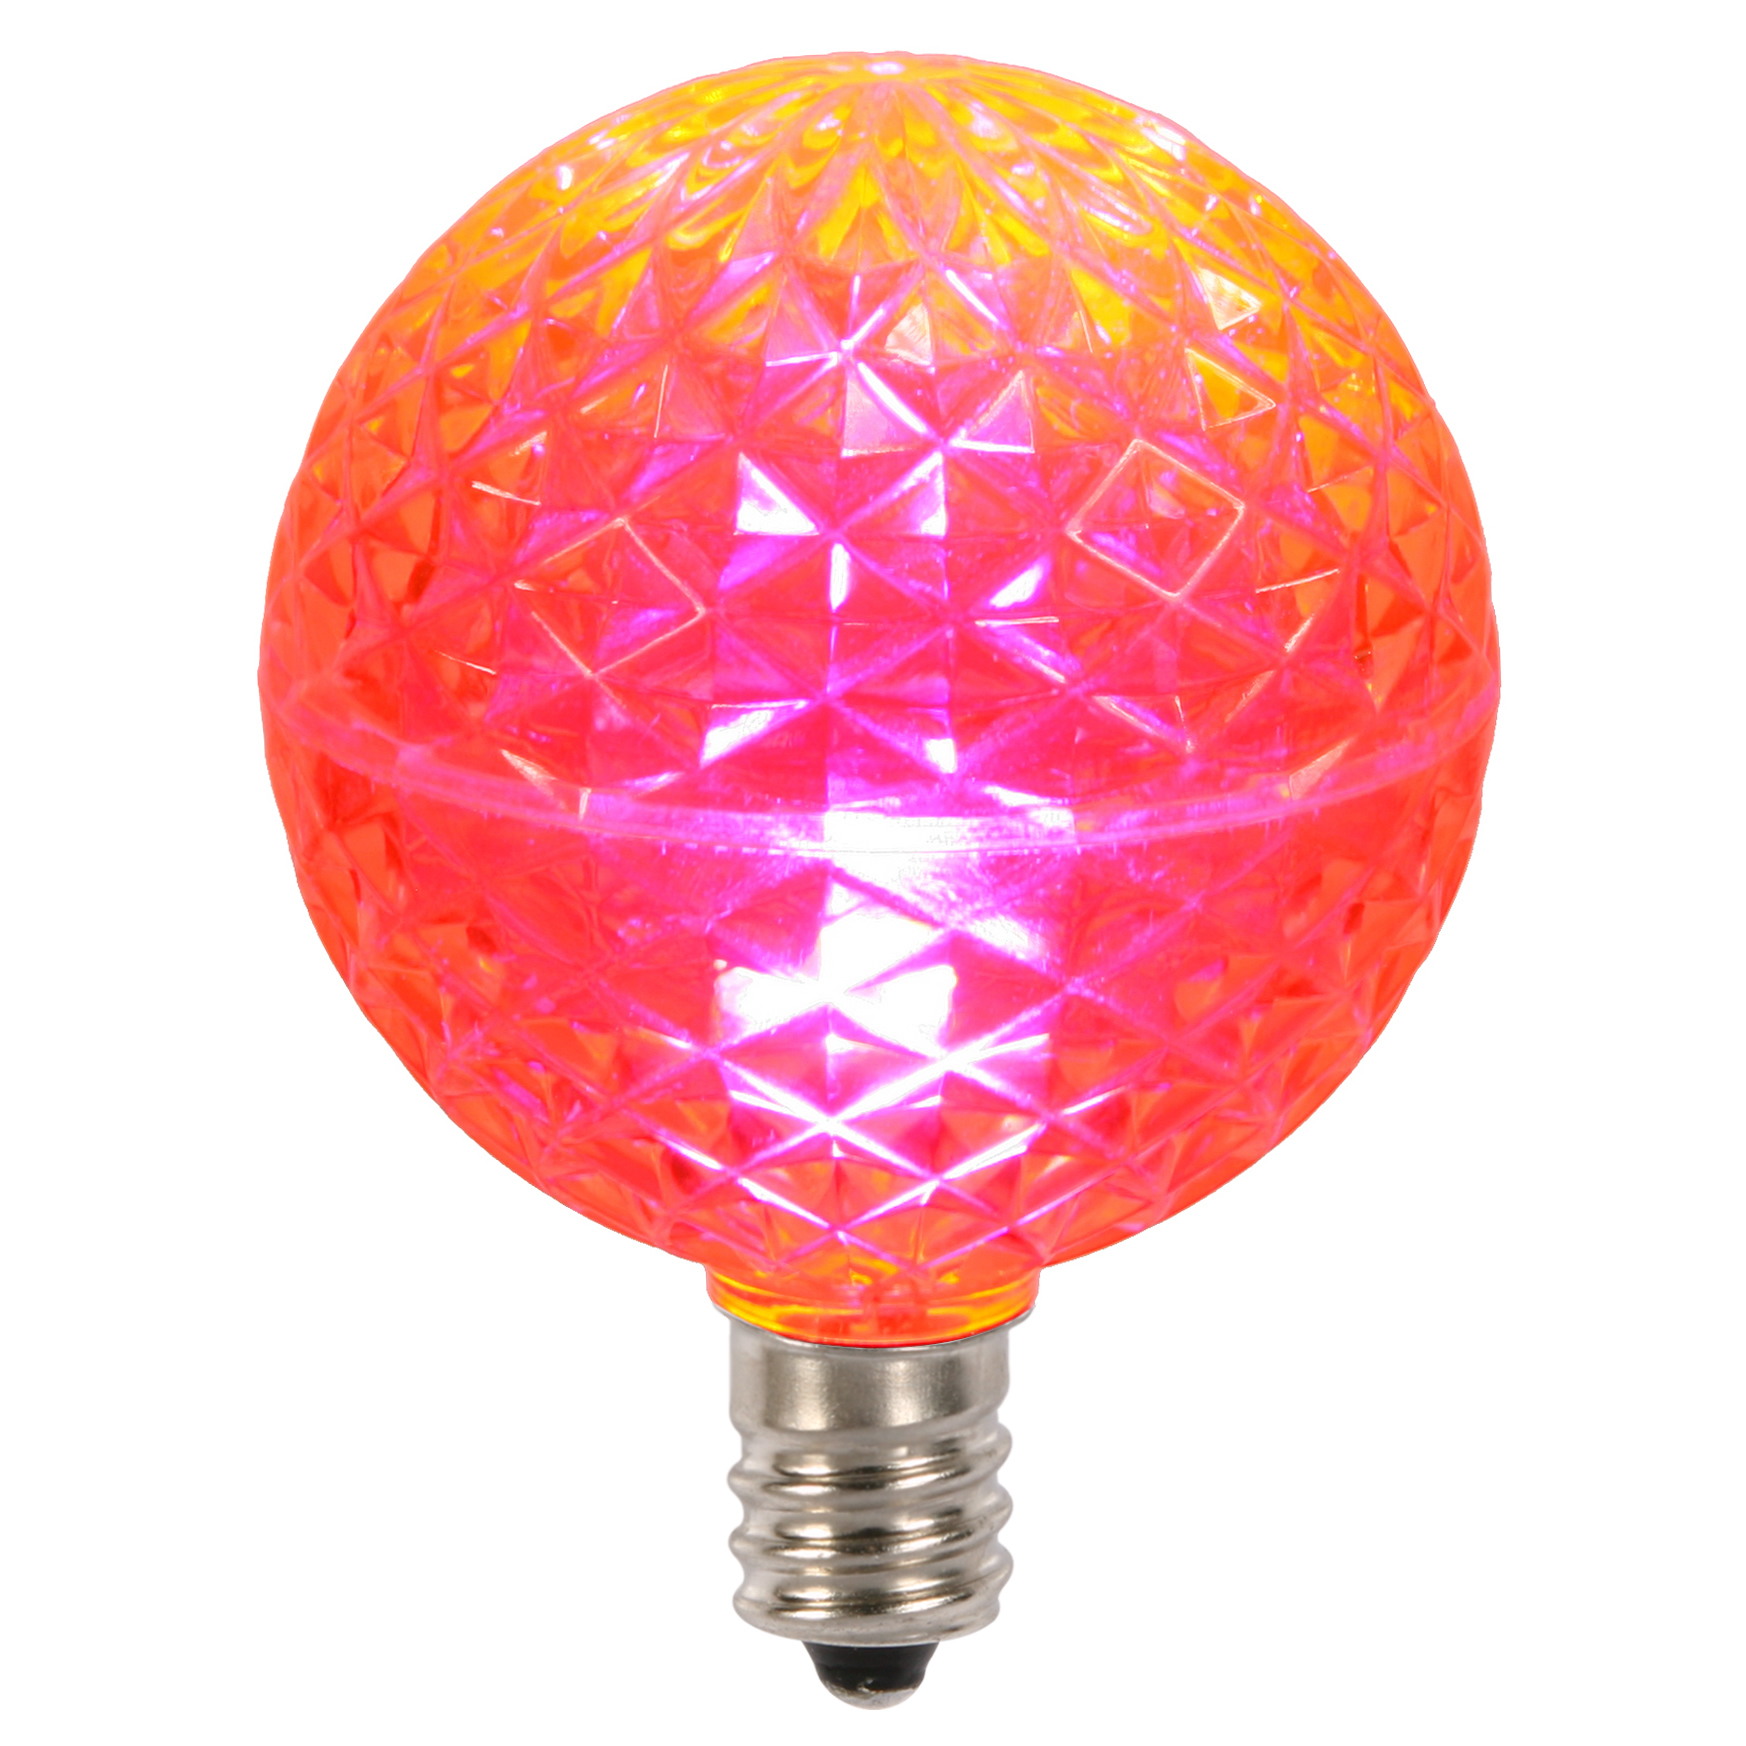 E12 Led Walmart: Vickerman G50 Faceted LED Pink Replacement Bulb E12 .38W